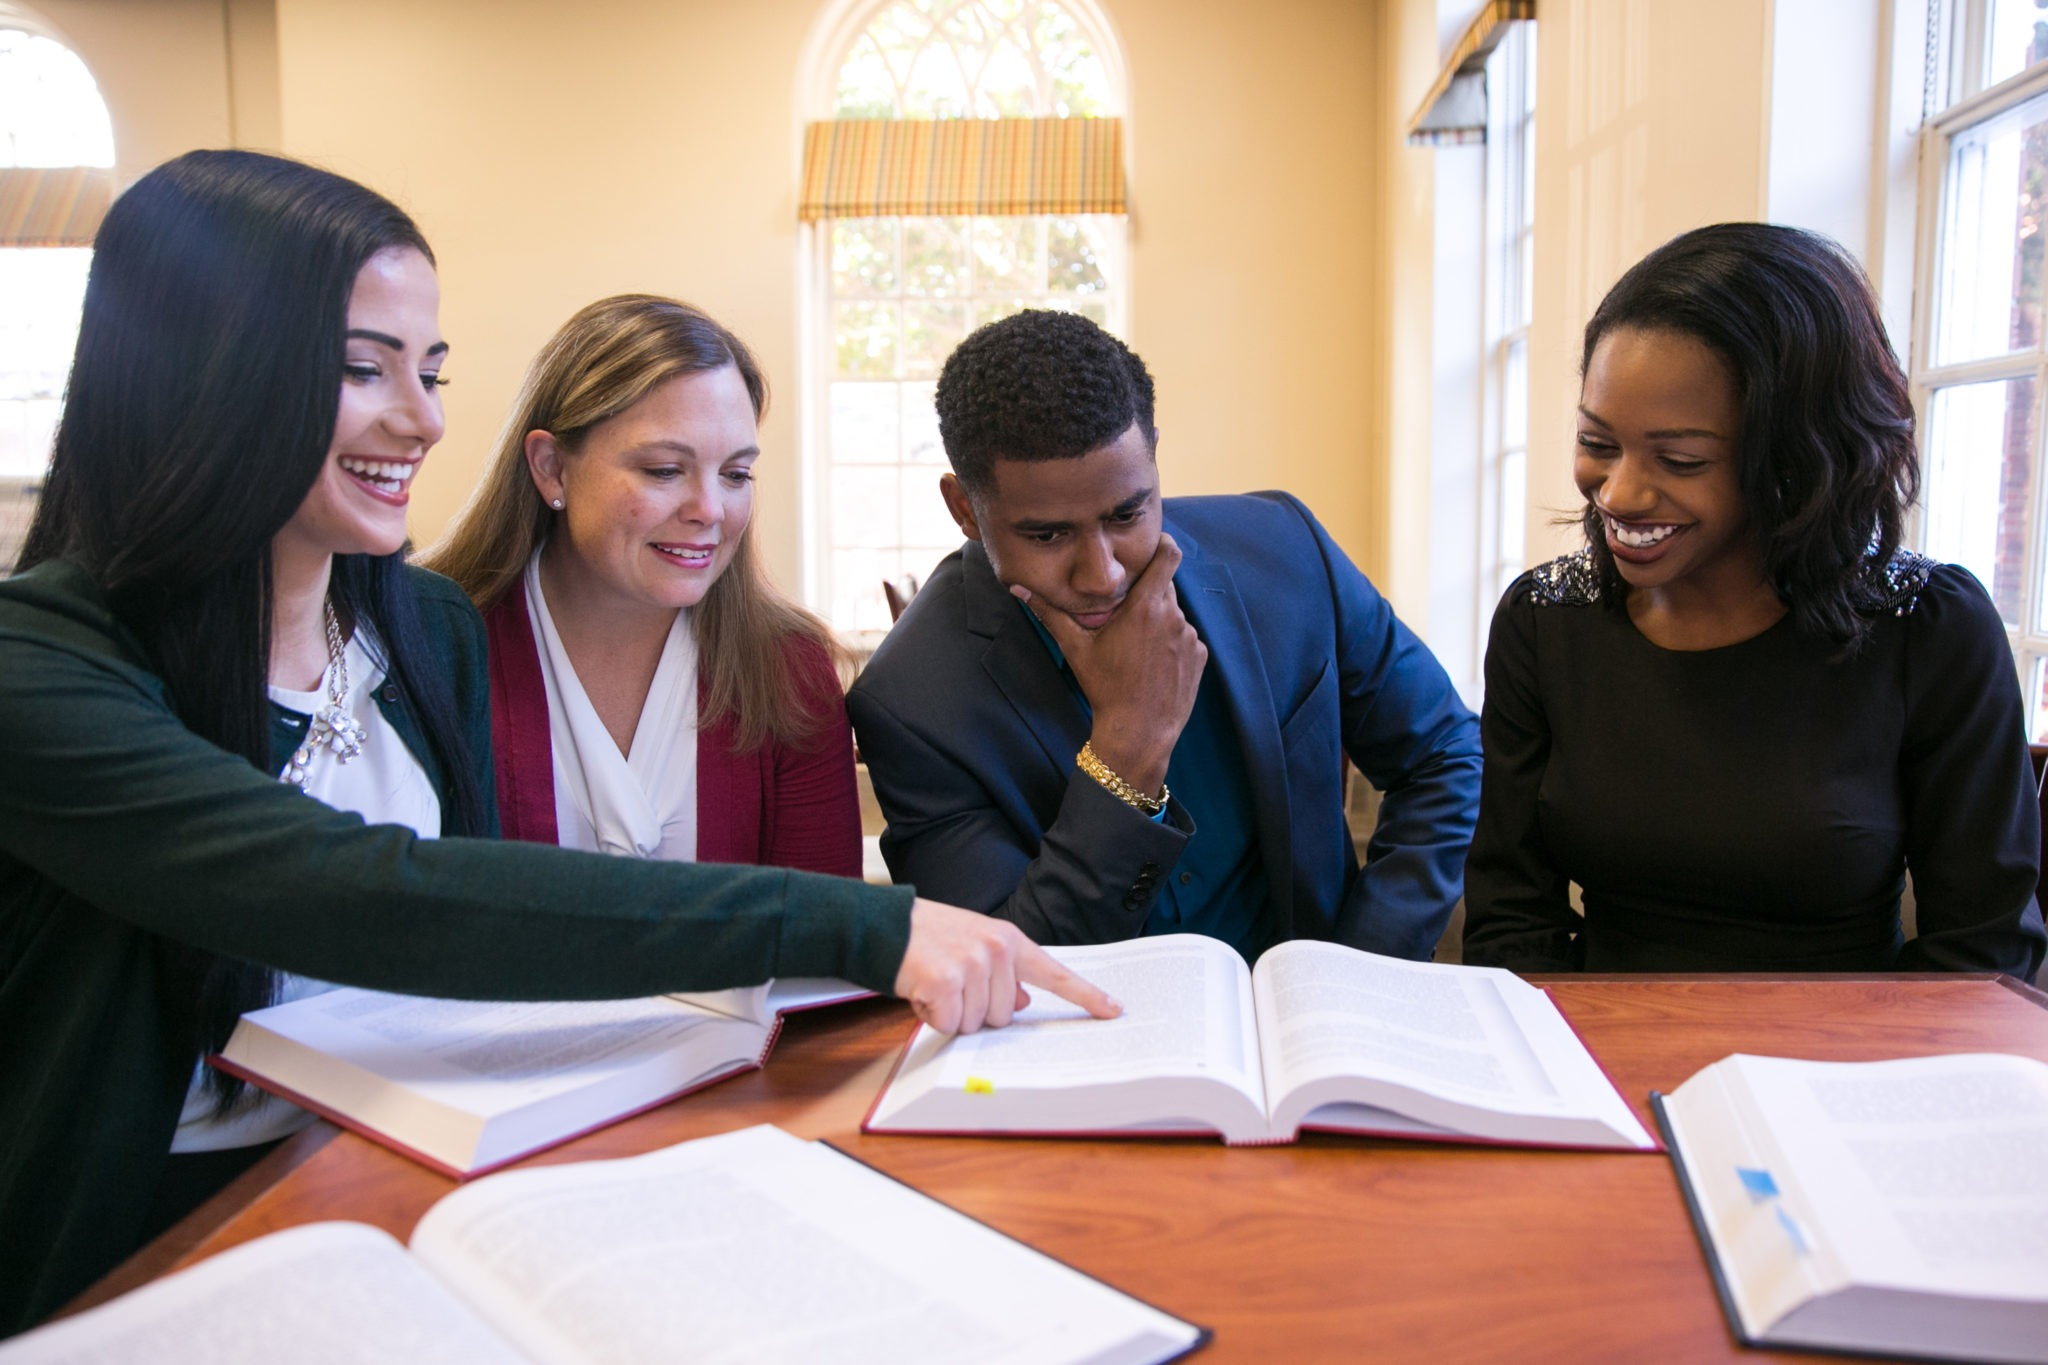 Students study together around a table.